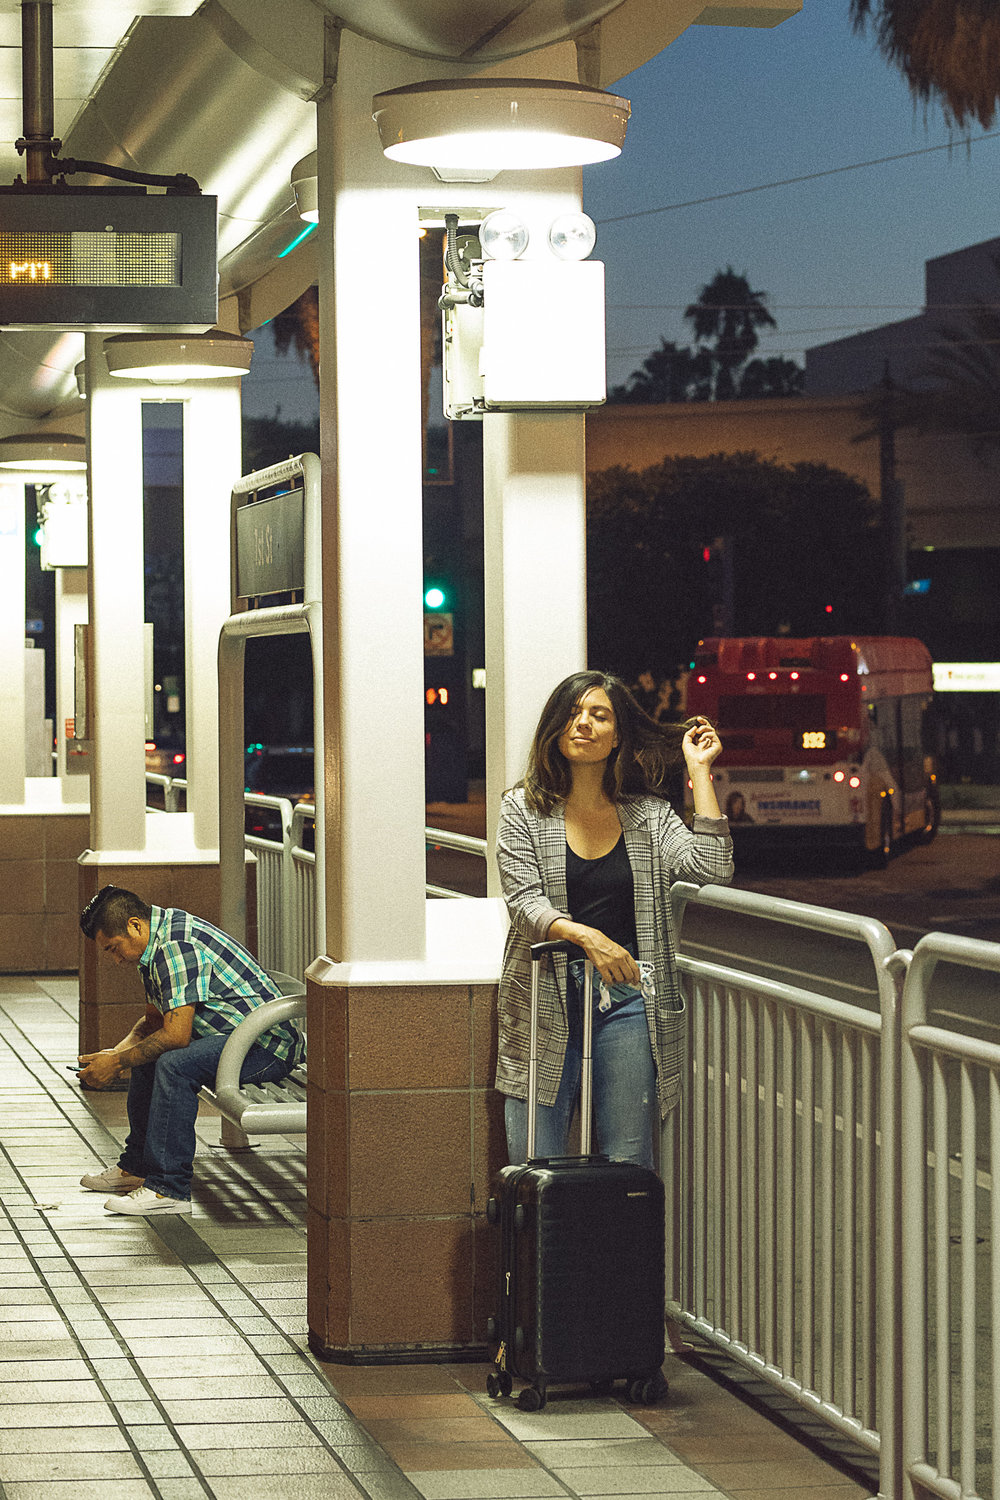 Rachel Off Duty: Woman at the Train Station